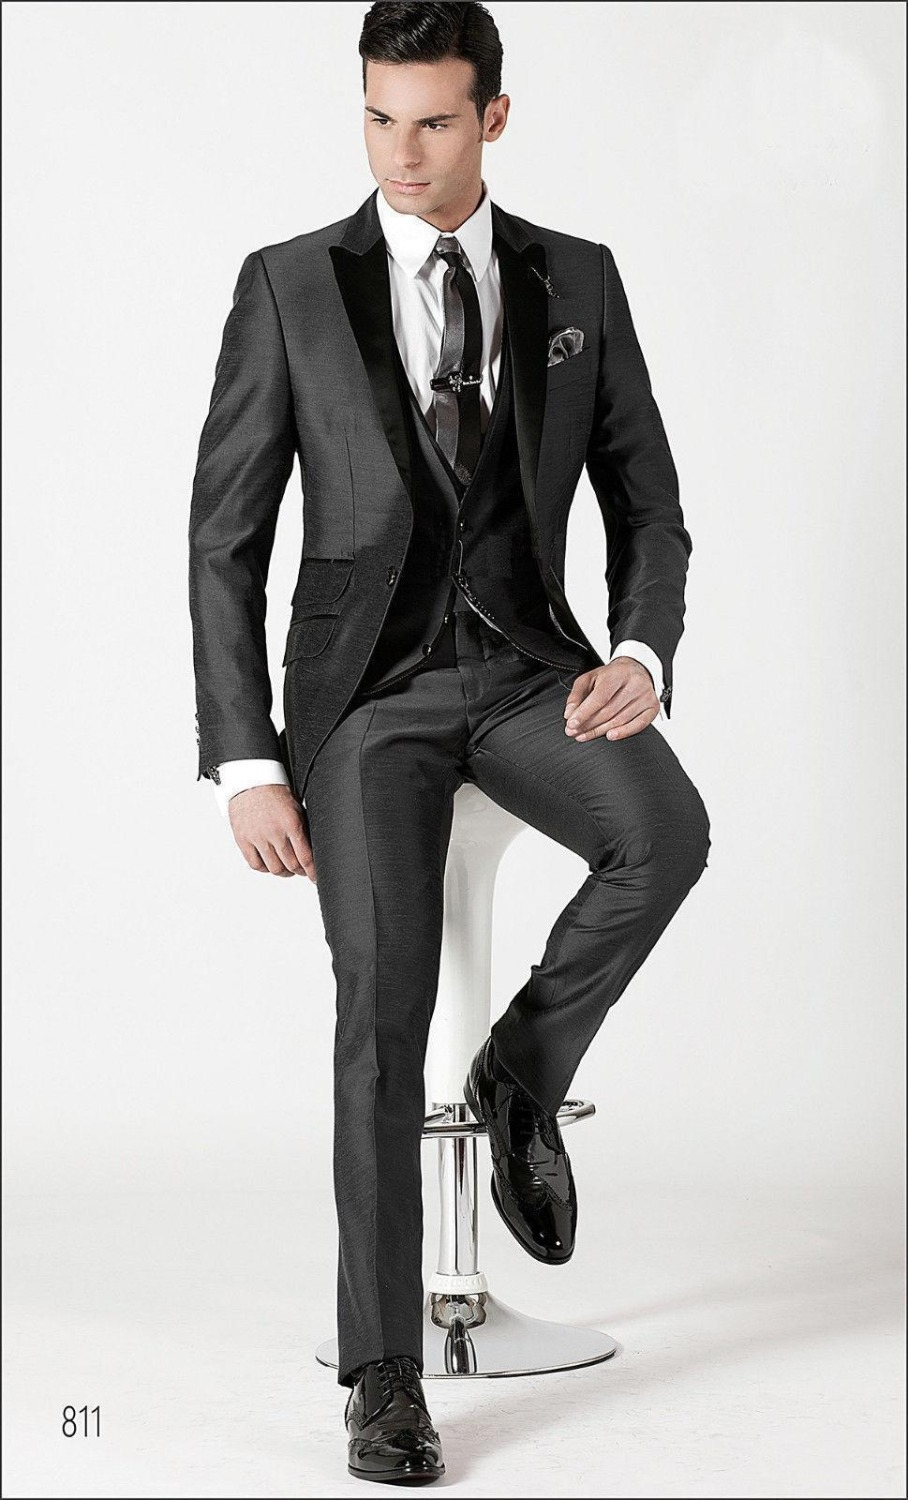 2016 Mens Suit Styles Dress Yy Black Suit Styles